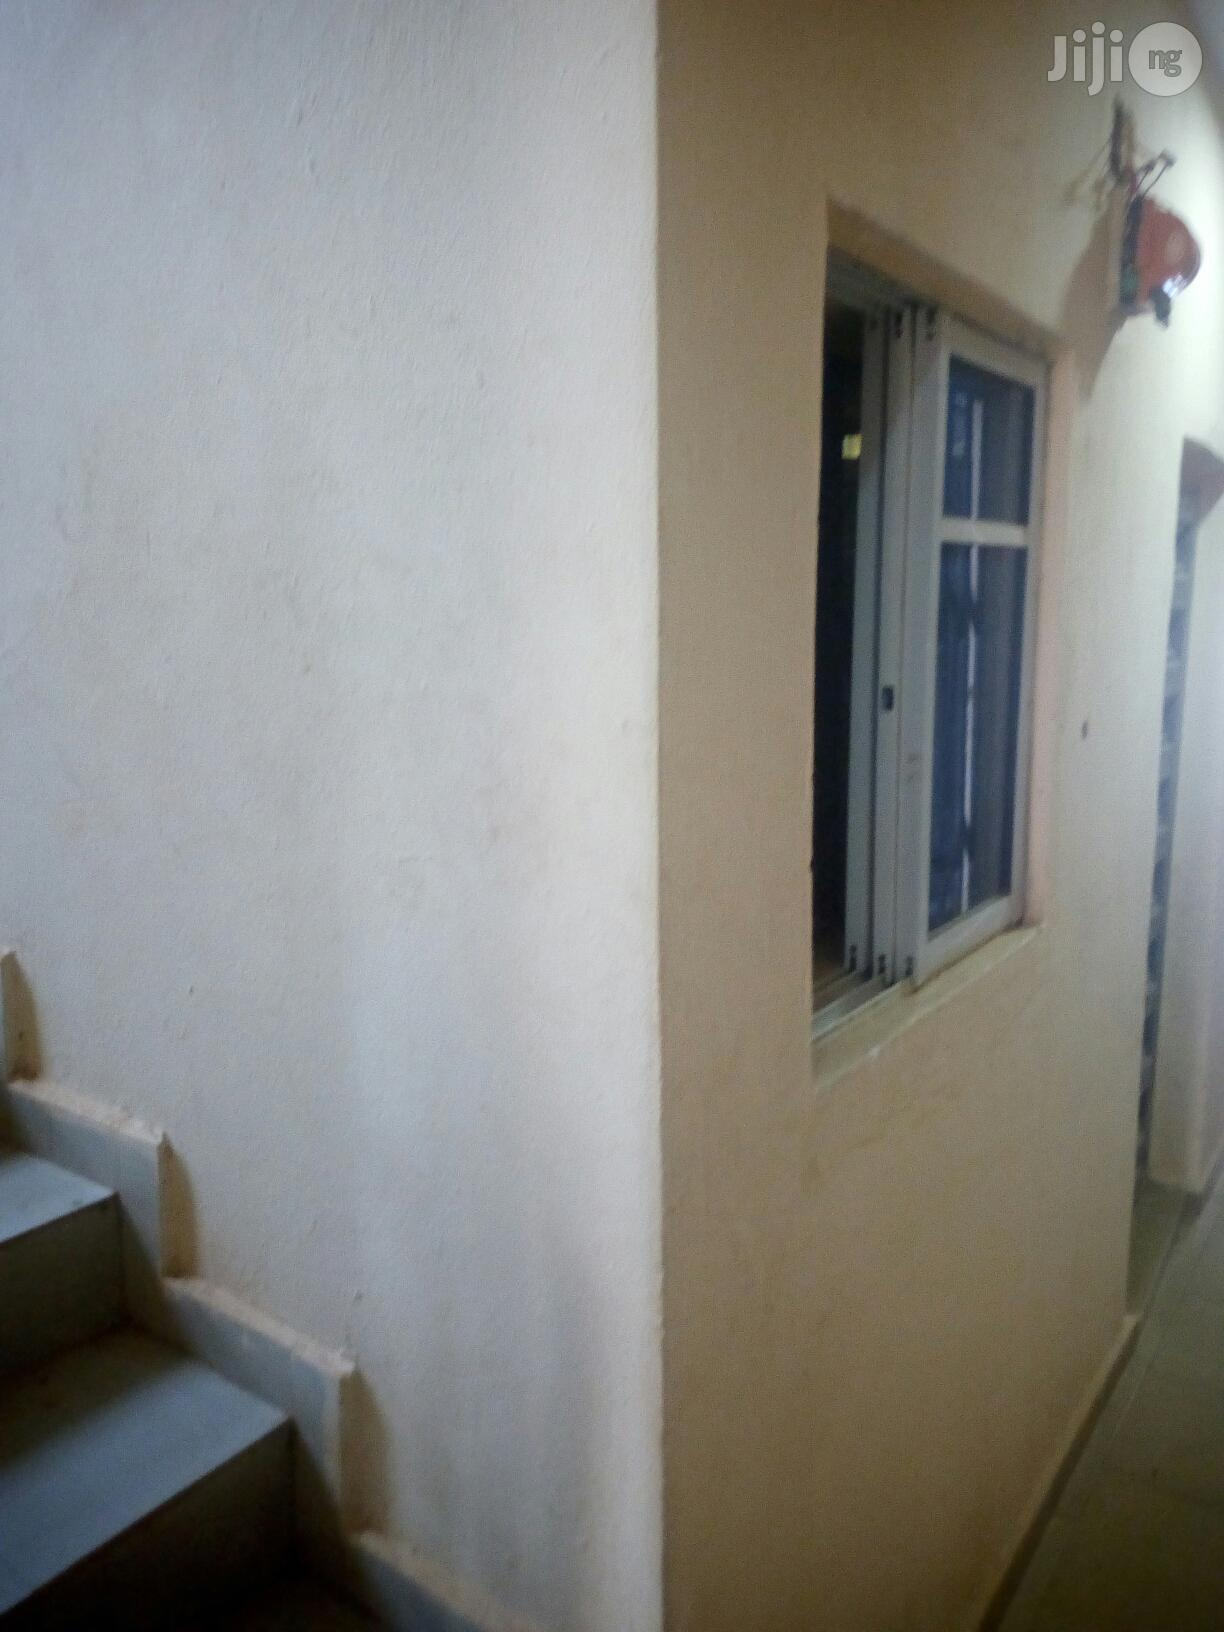 A New Selfcontained Room/Federal Light/Borehole/Owerri City/4 Rent | Houses & Apartments For Rent for sale in Owerri, Imo State, Nigeria